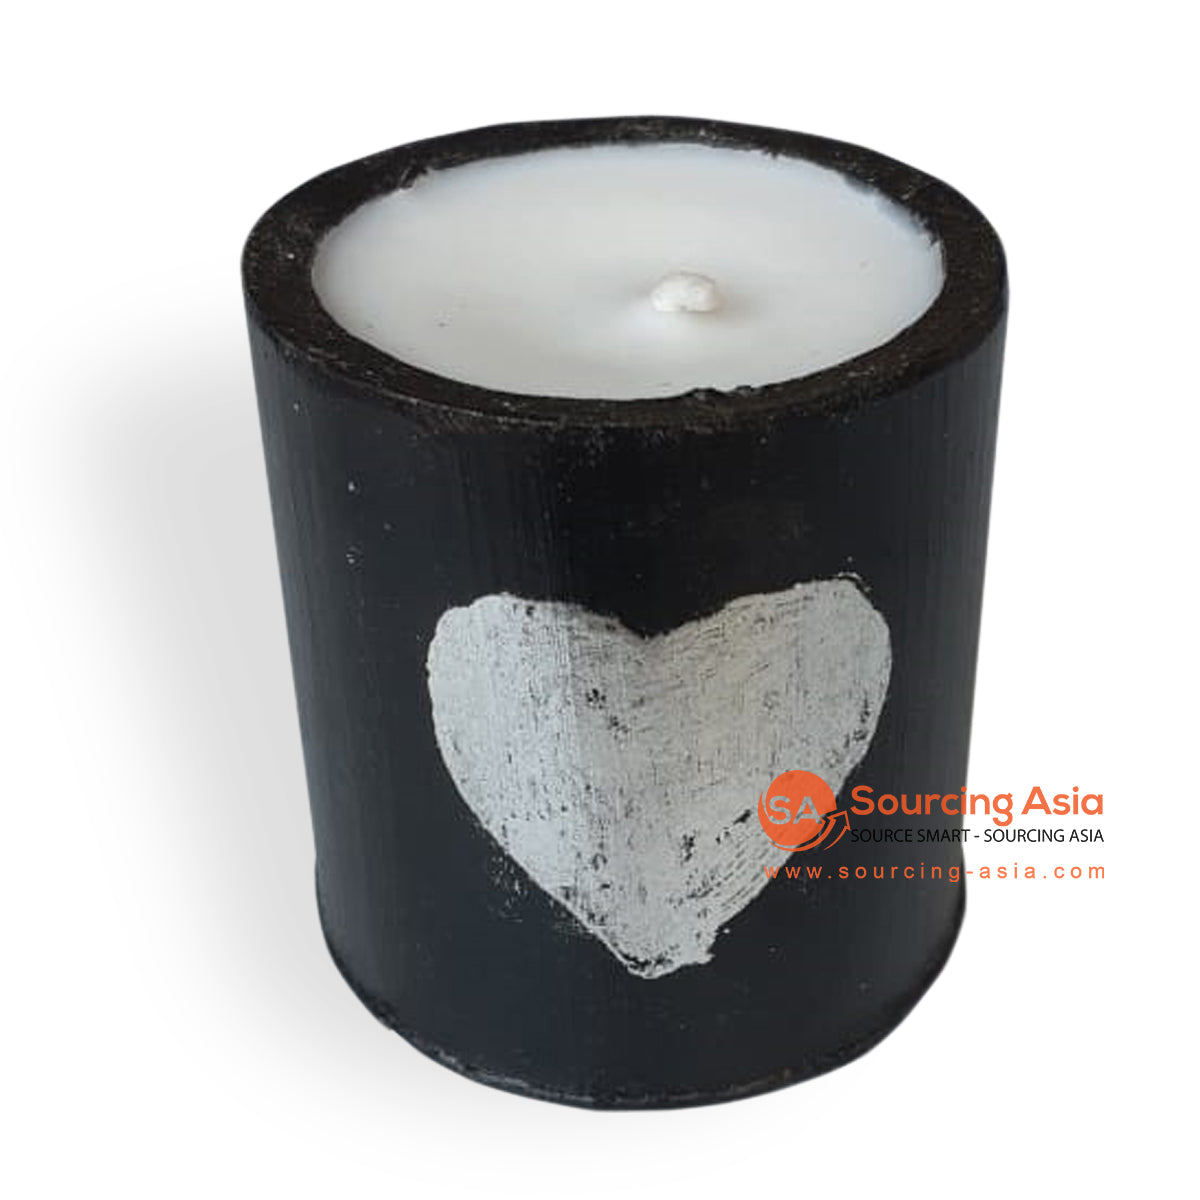 BSC028-2 CANDLE HOLDER